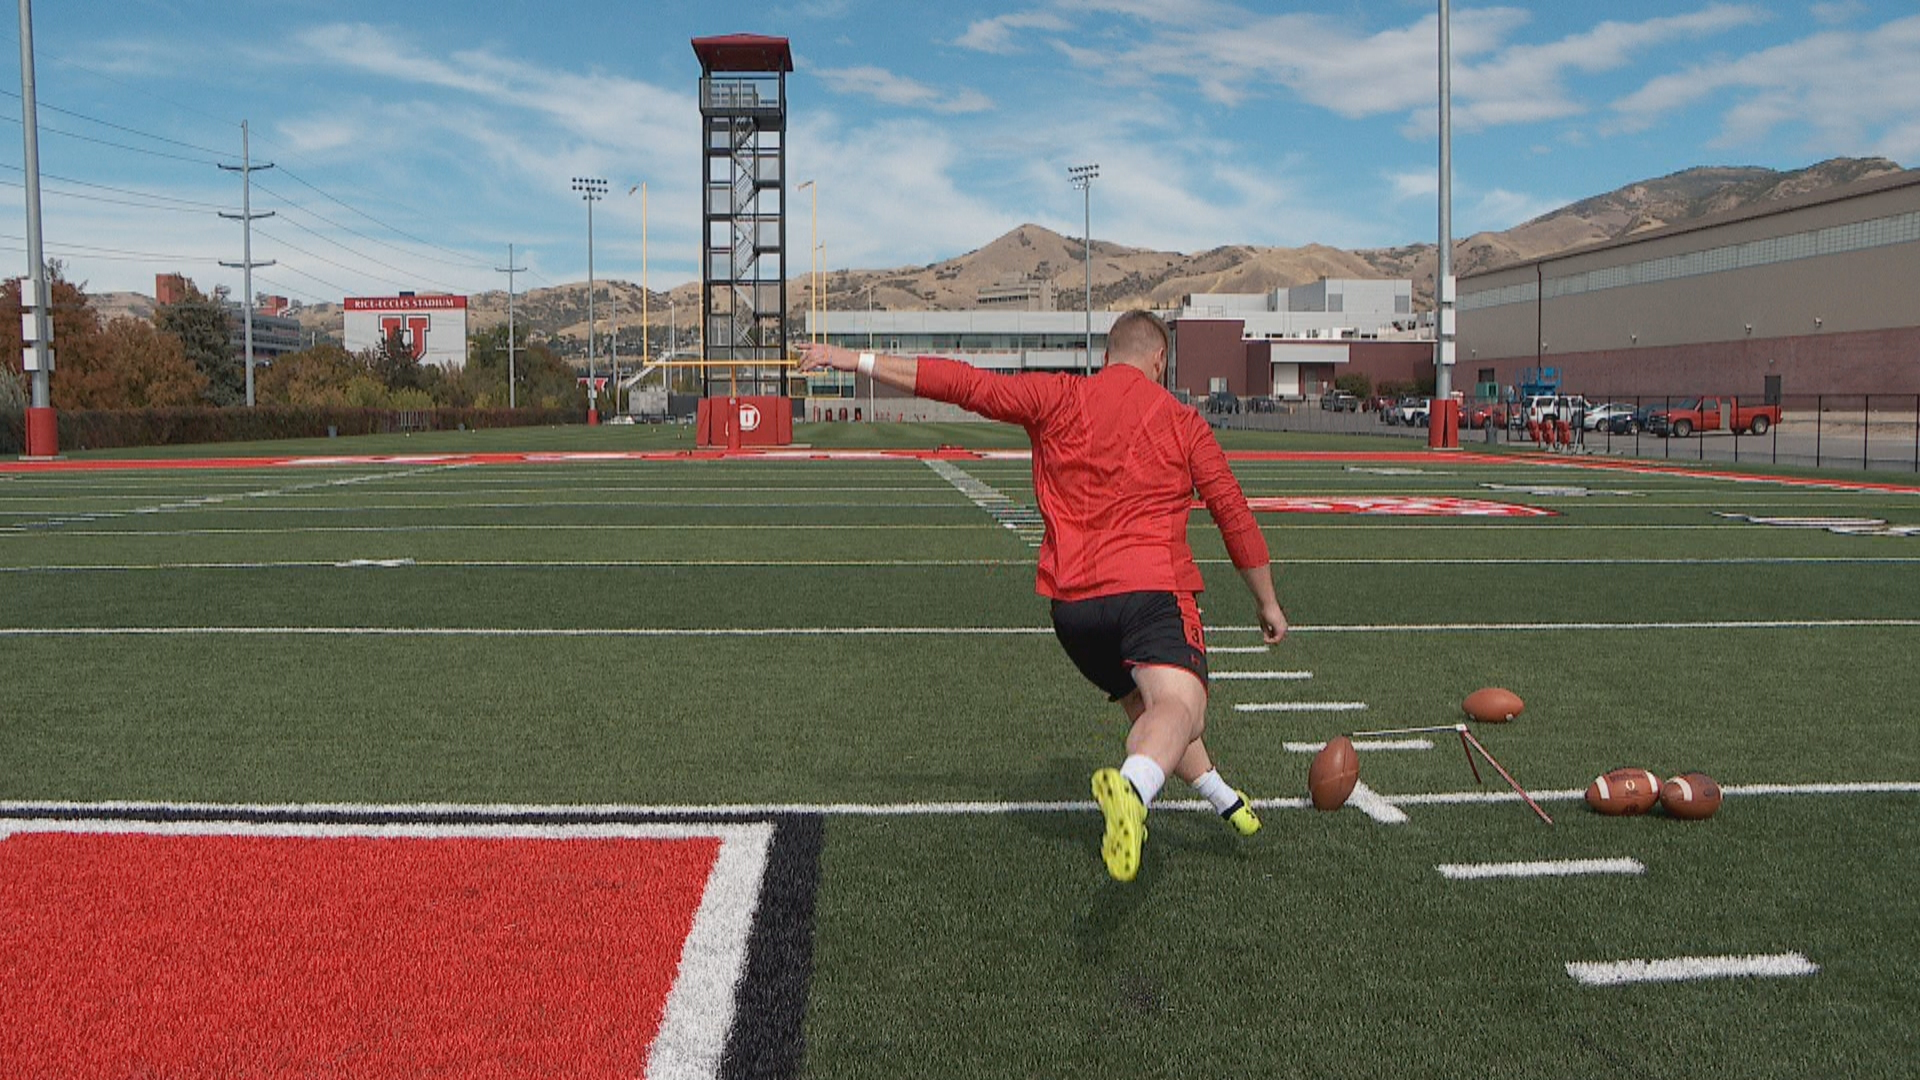 Inside the Story: Soccer player switches sides and teams in BYU-Utah Rivalry (Photo: KUTV)